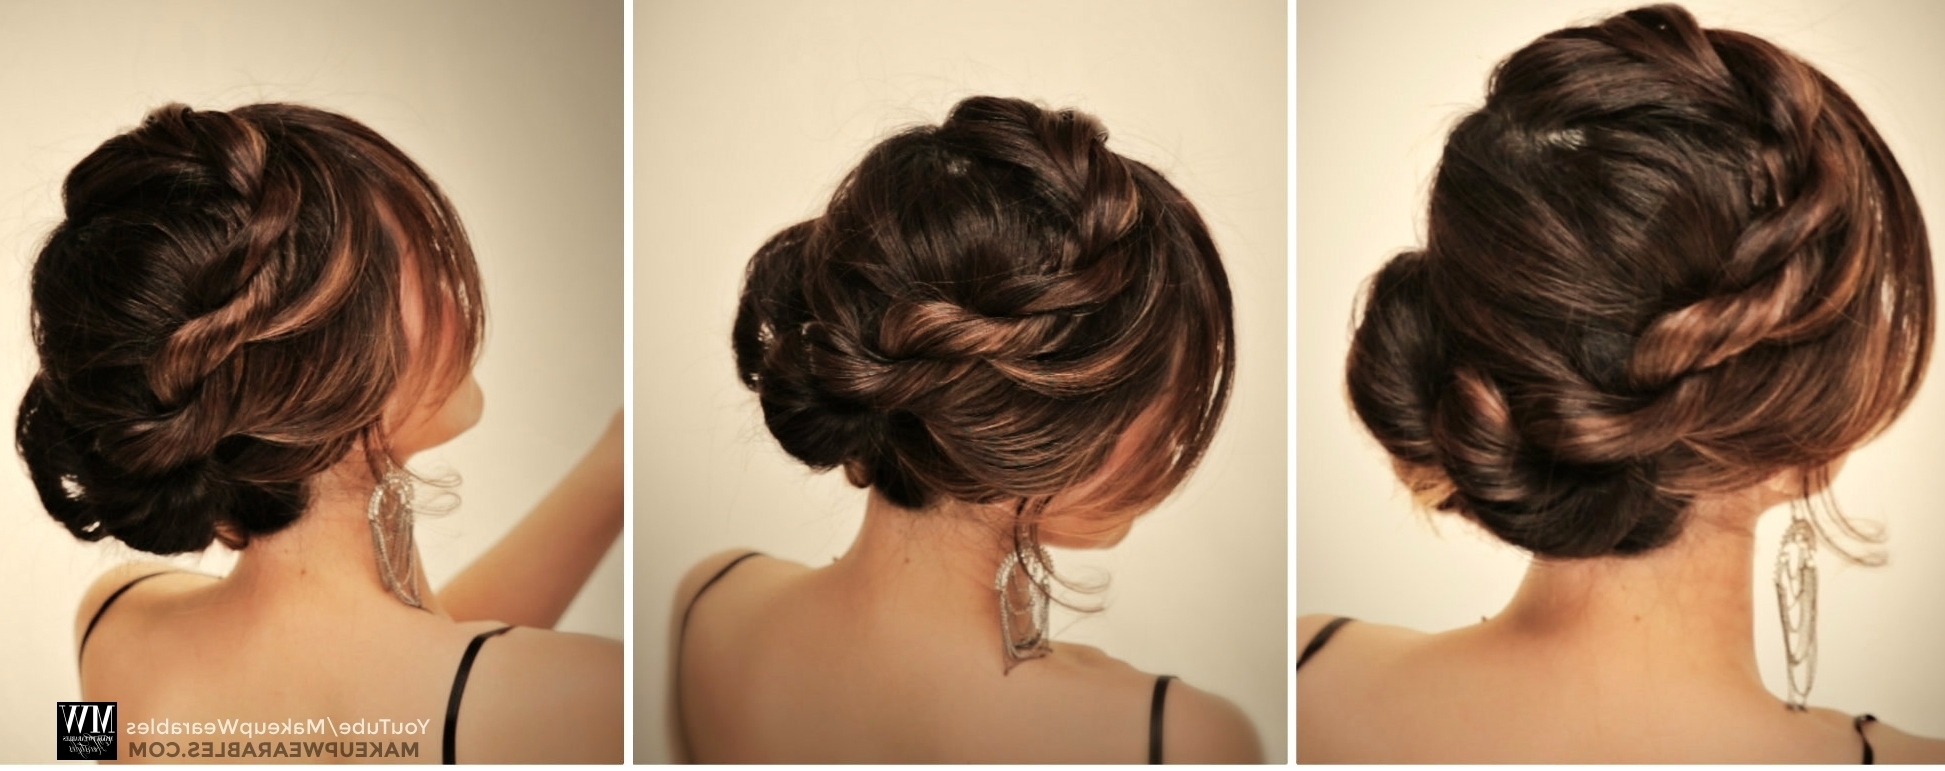 How To: 5 Amazingly Cute + Easy Hairstyles With A Simple Twist Regarding Updo Hairstyles For School (View 10 of 15)